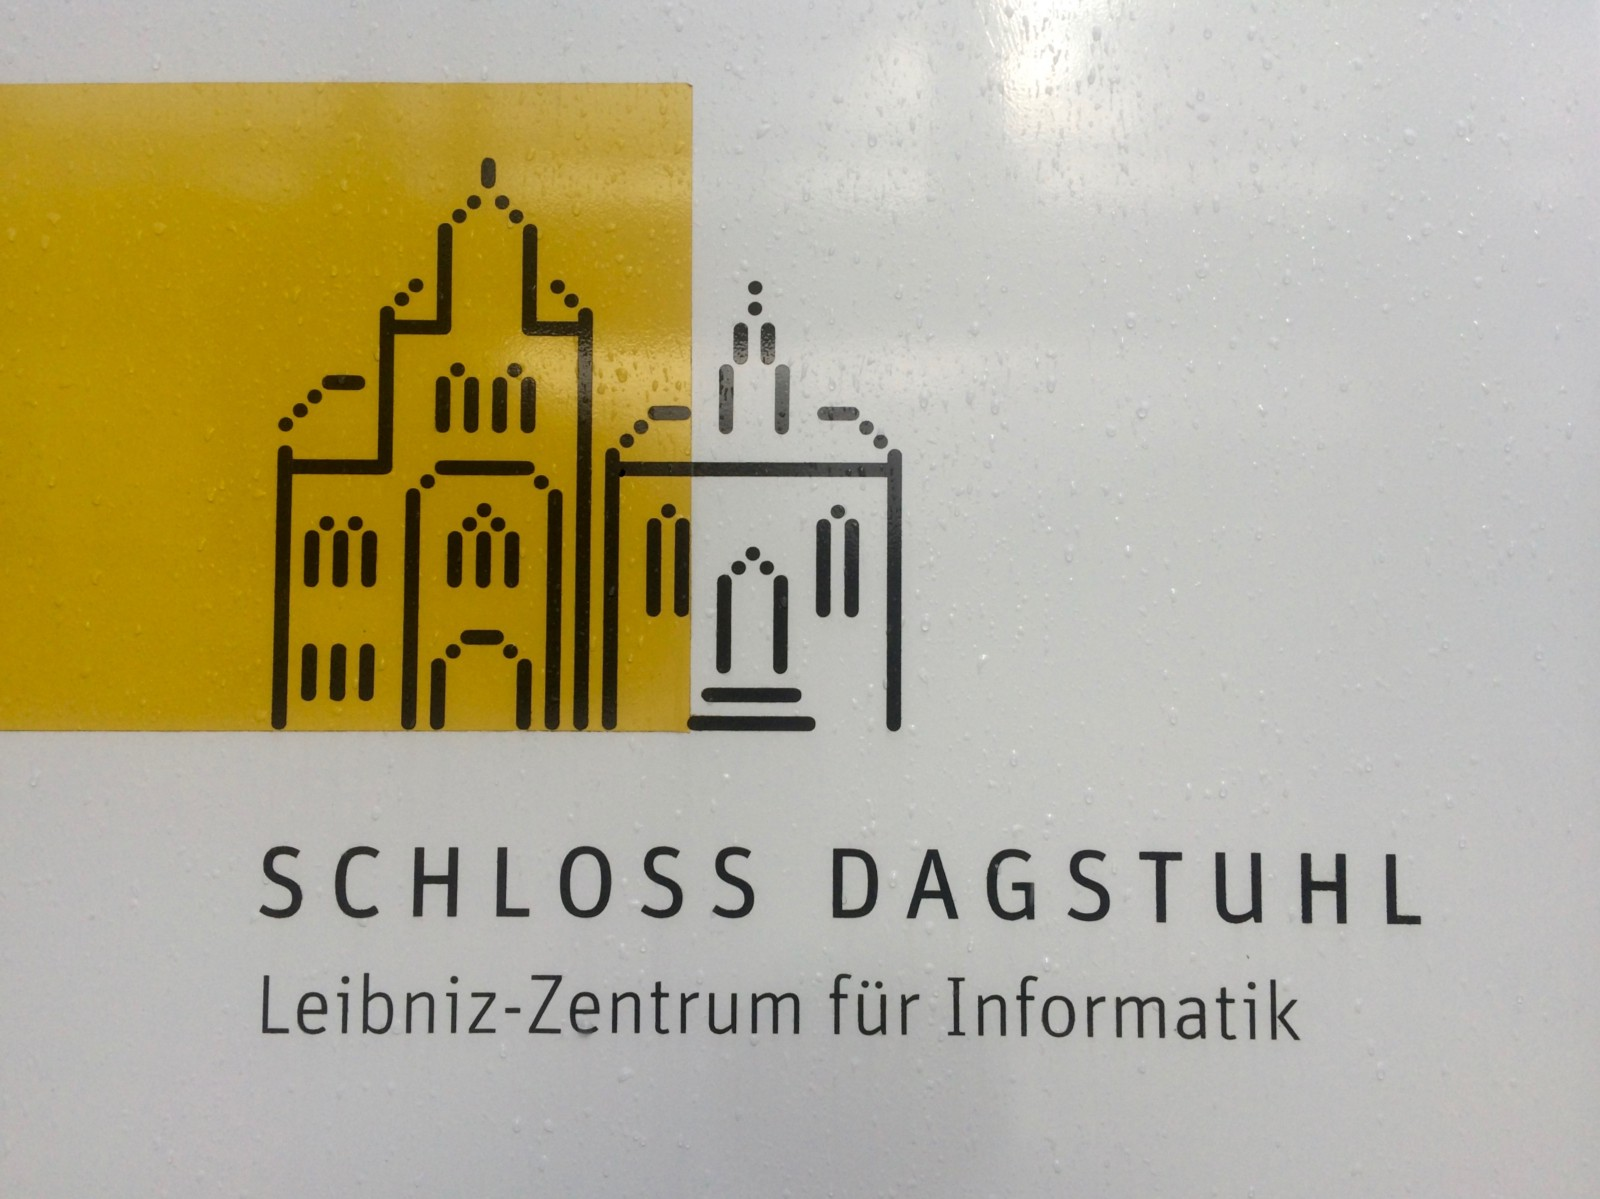 Some things I learned about data-driven storytelling in Schloss Dagstuhl